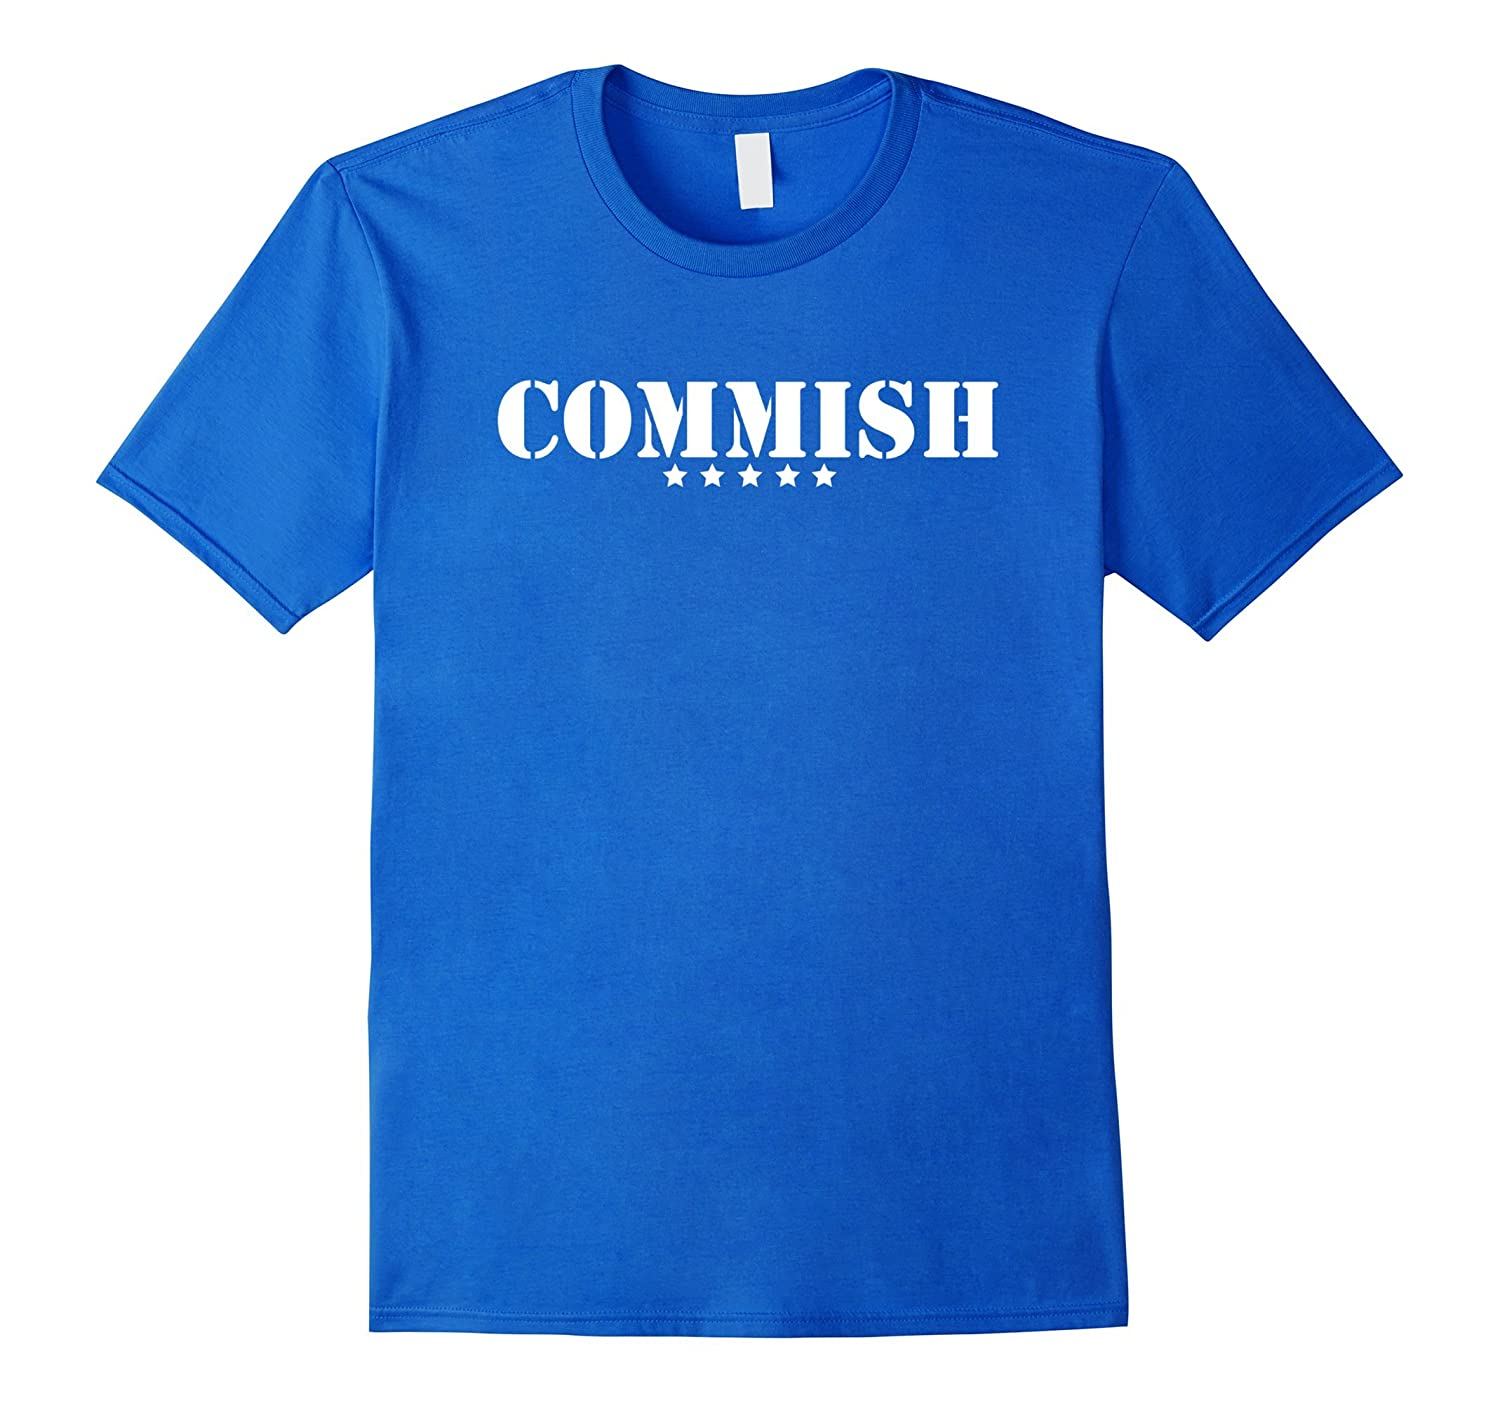 Fantasy Football Commish t-shirt – Funny sports shirt